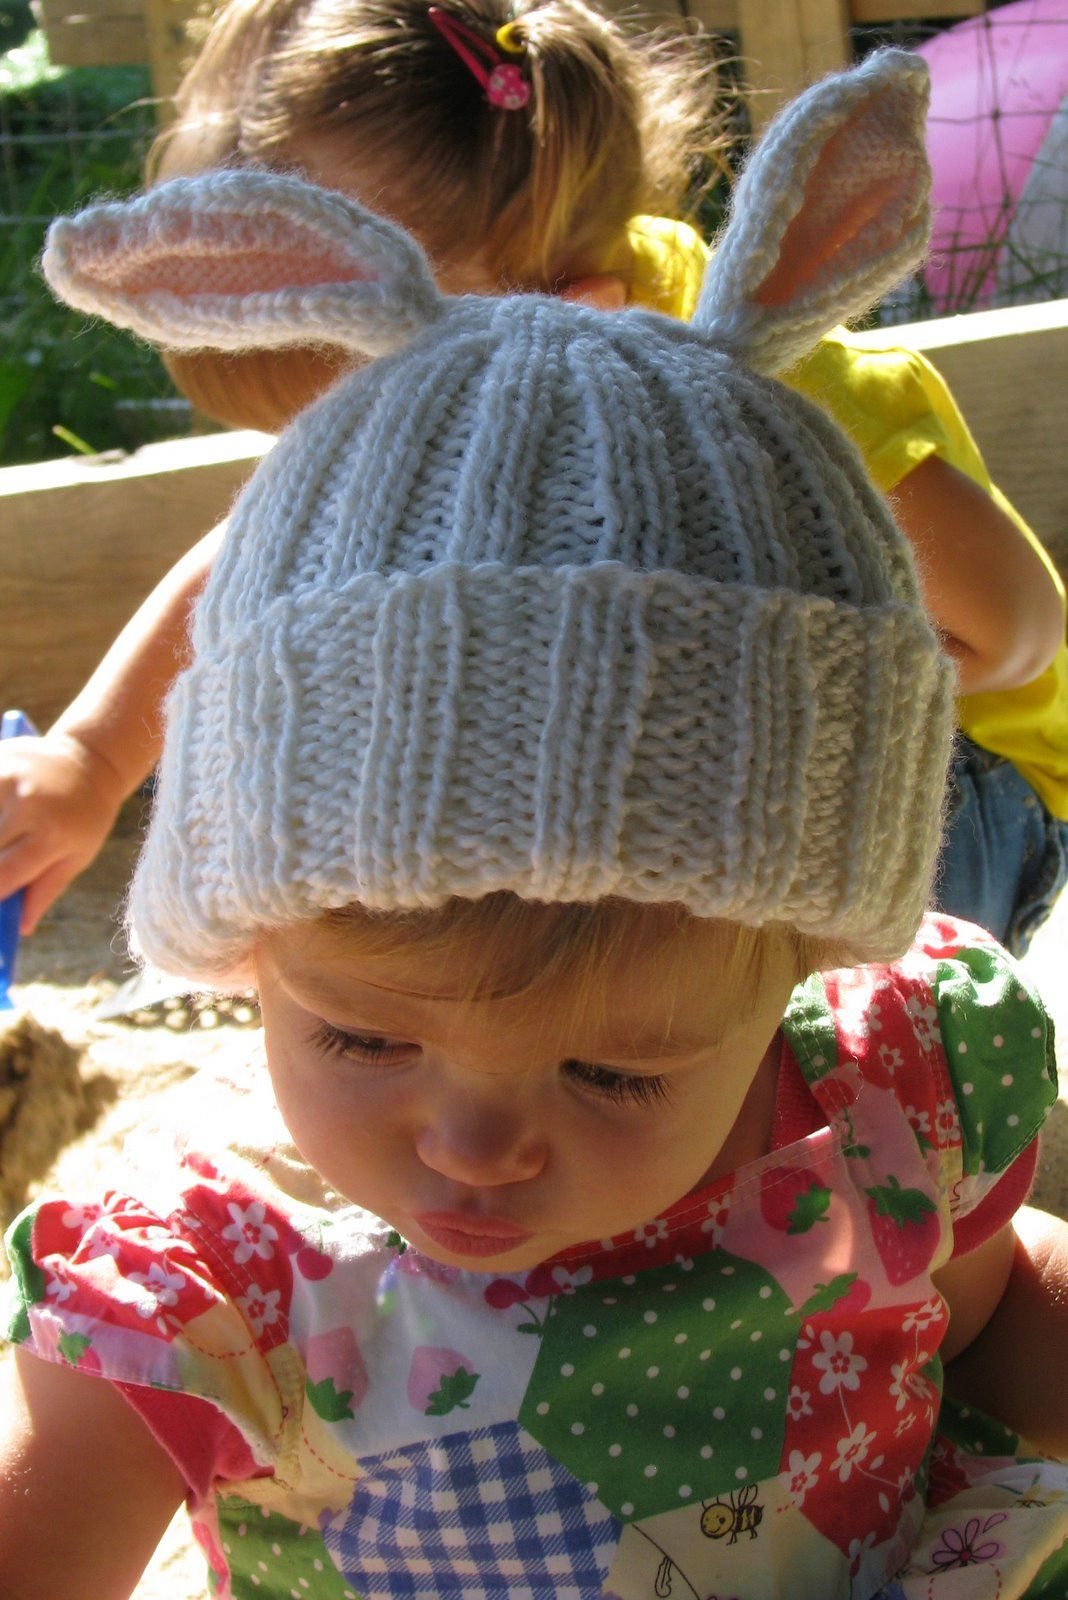 Bunny Rabbit Knitting Patterns | knitting | Pinterest | Ear hats ...